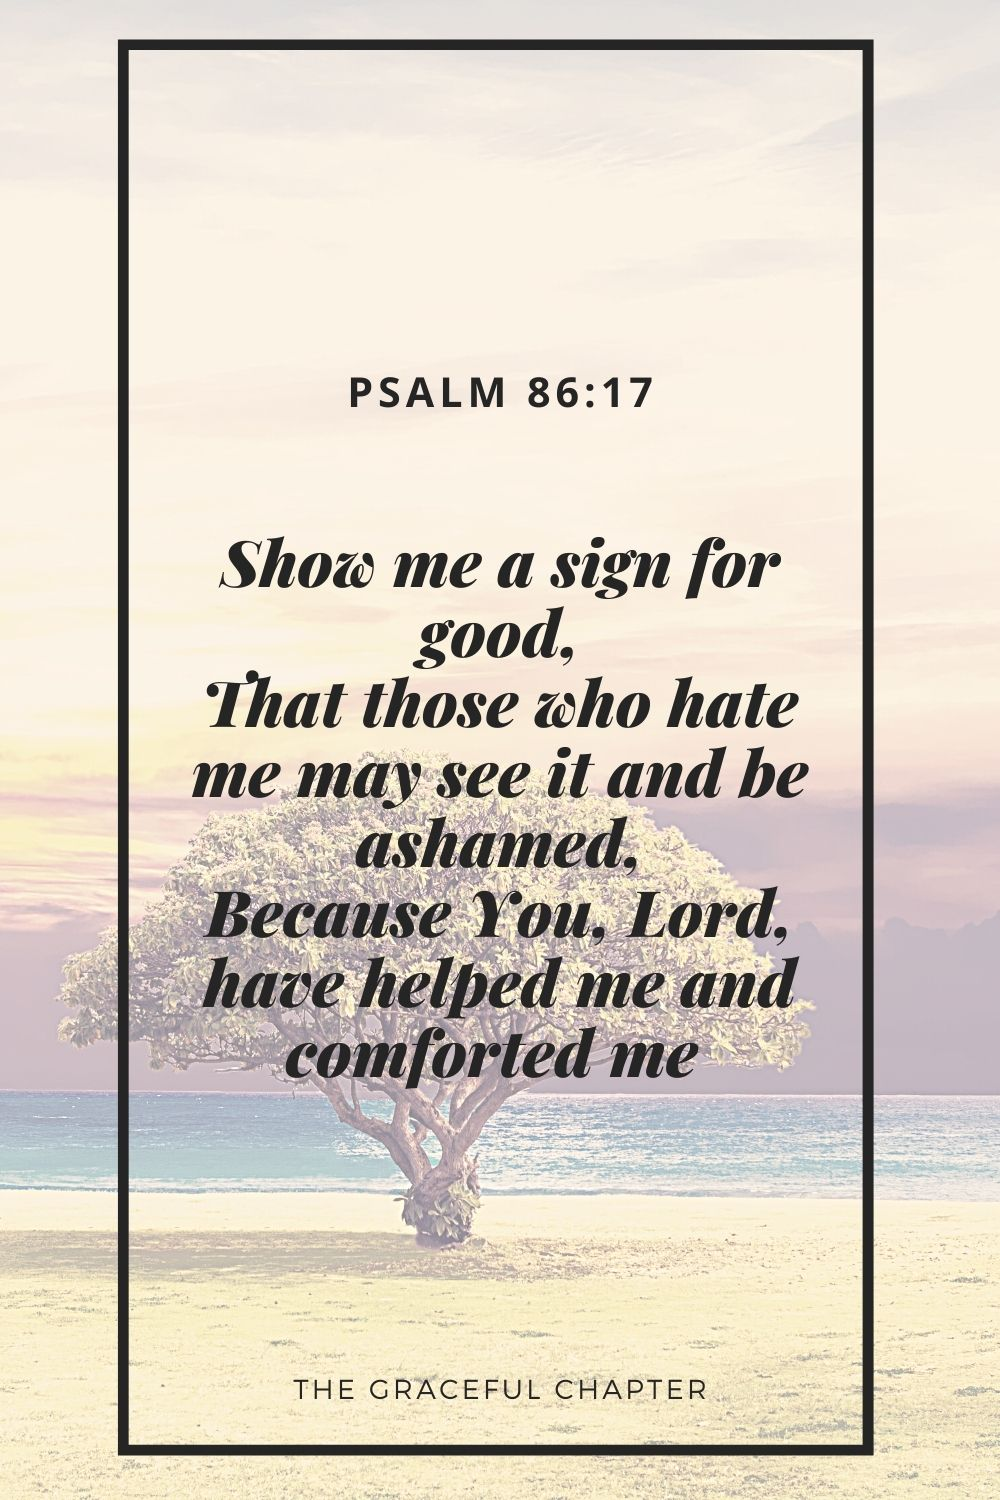 Show me a sign for good, That those who hate me may see it and be ashamed, Because You, Lord, have helped me and comforted me Psalm 86:17